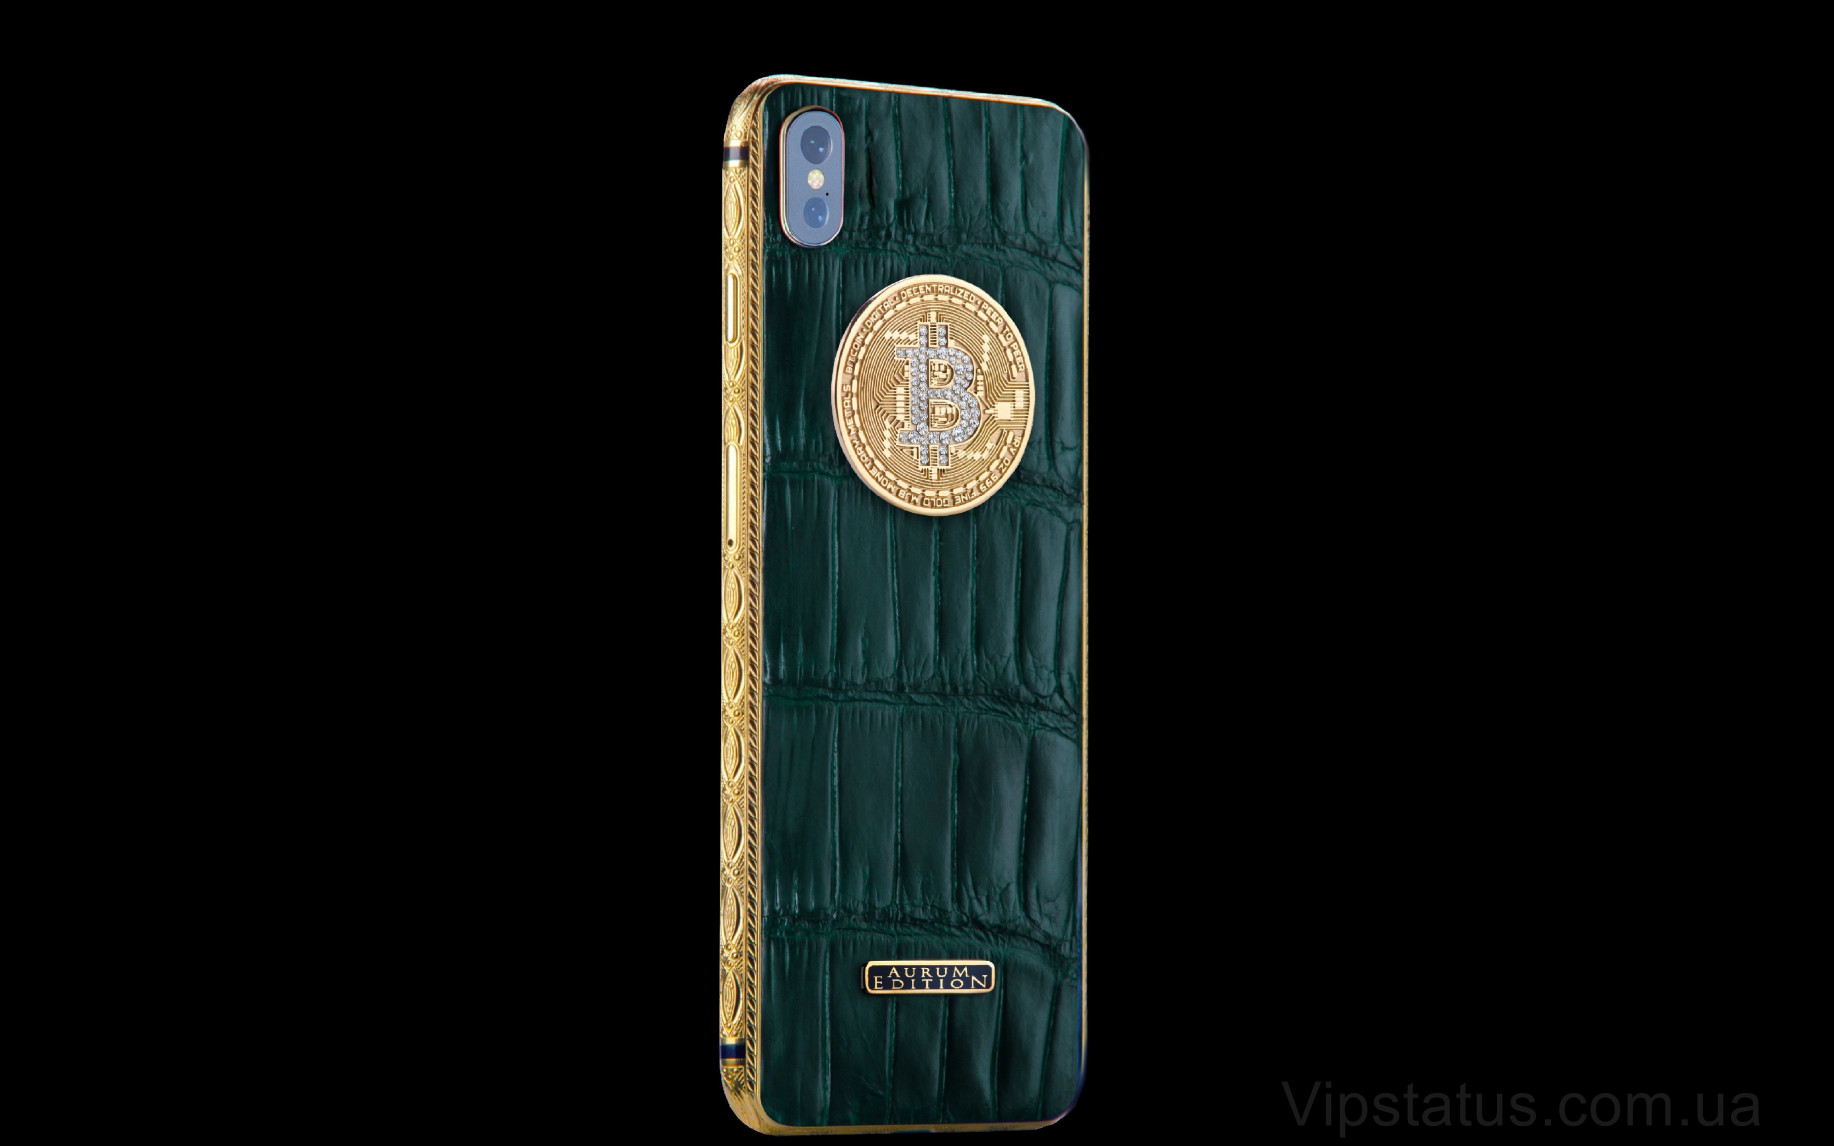 Elite Great Bitcoin Diamond IPHONE 11 PRO MAX 512 GB Great Bitcoin Diamond IPHONE 11 PRO MAX 512 GB image 1